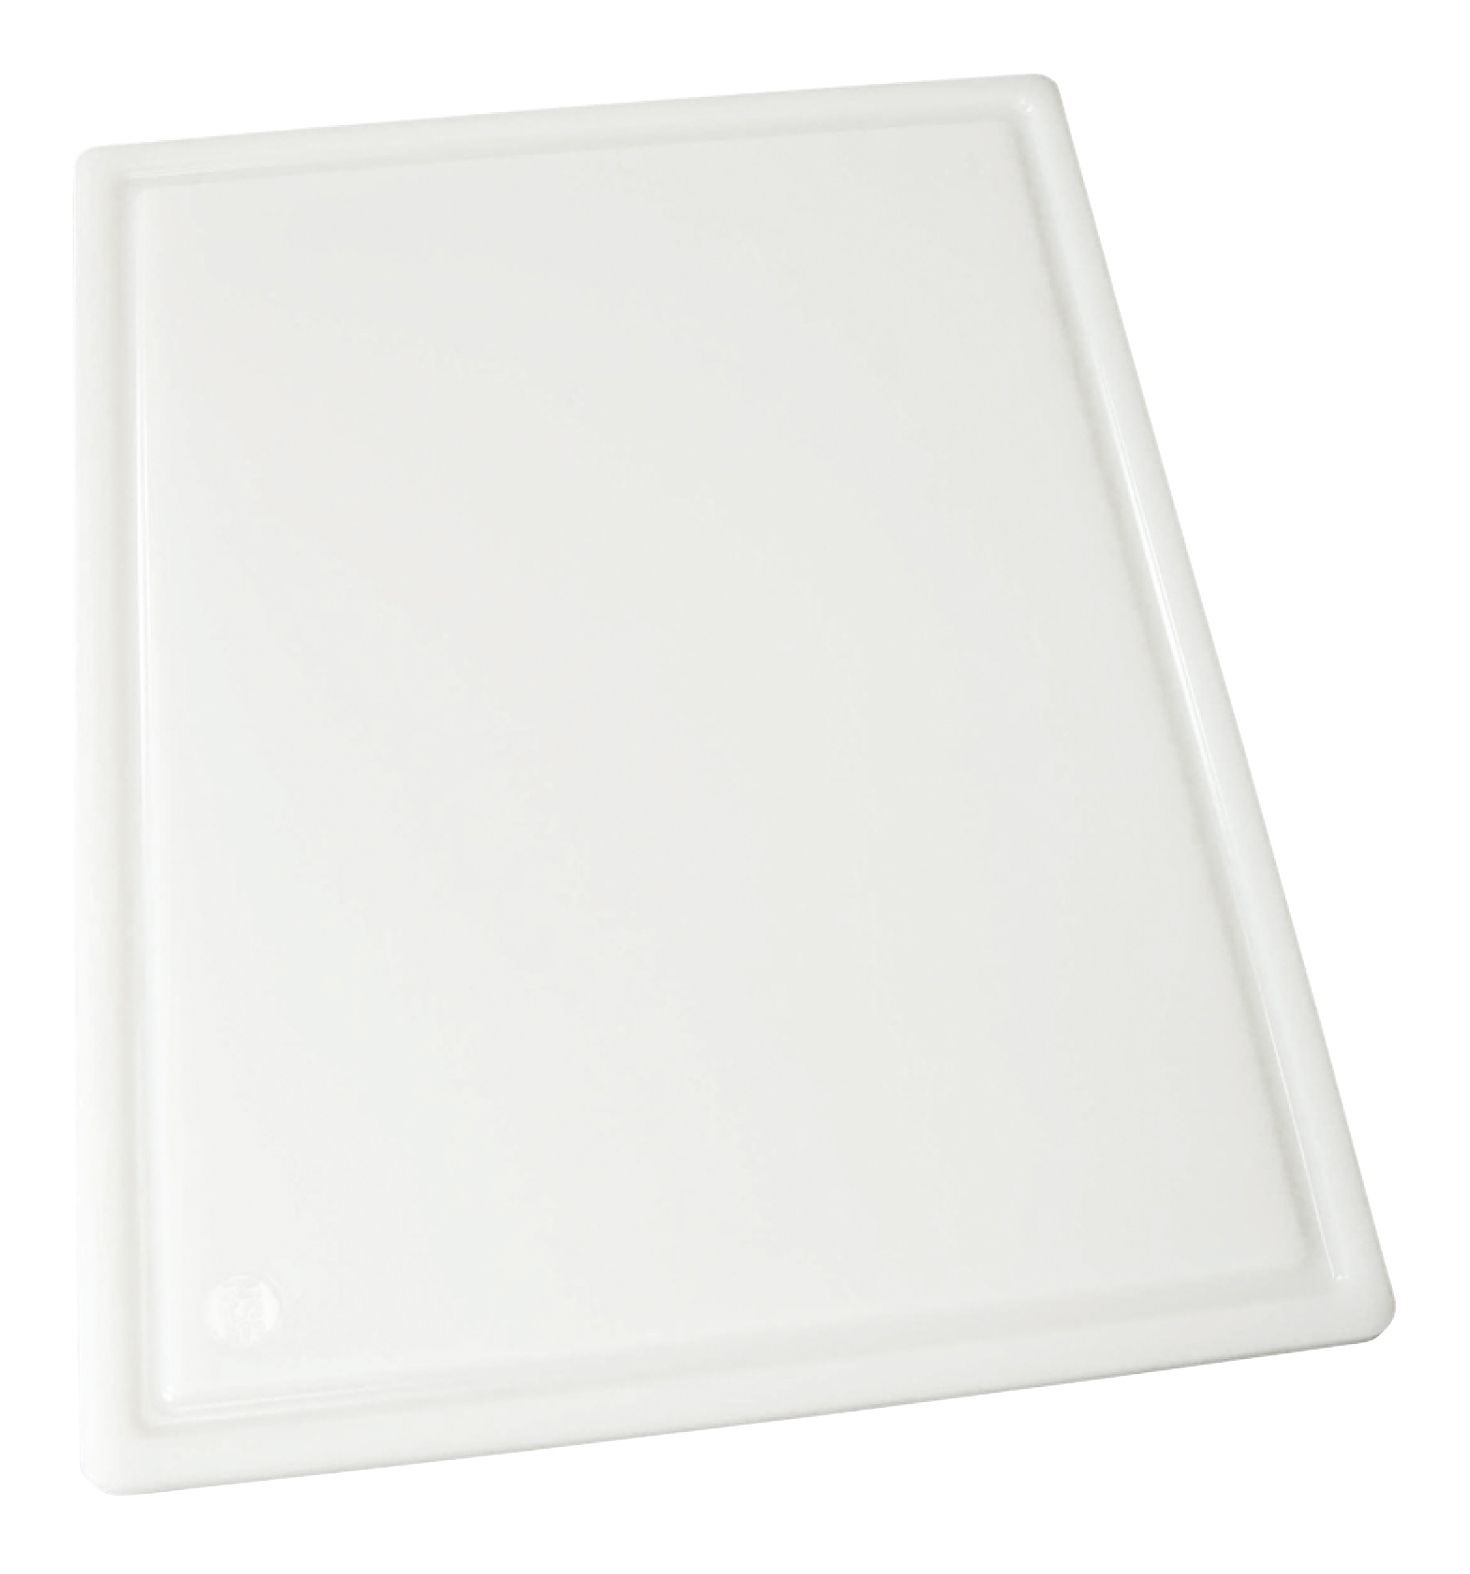 Grooved Cutting Board 18X24 X1/2 White (Bakery & Dairy Board)